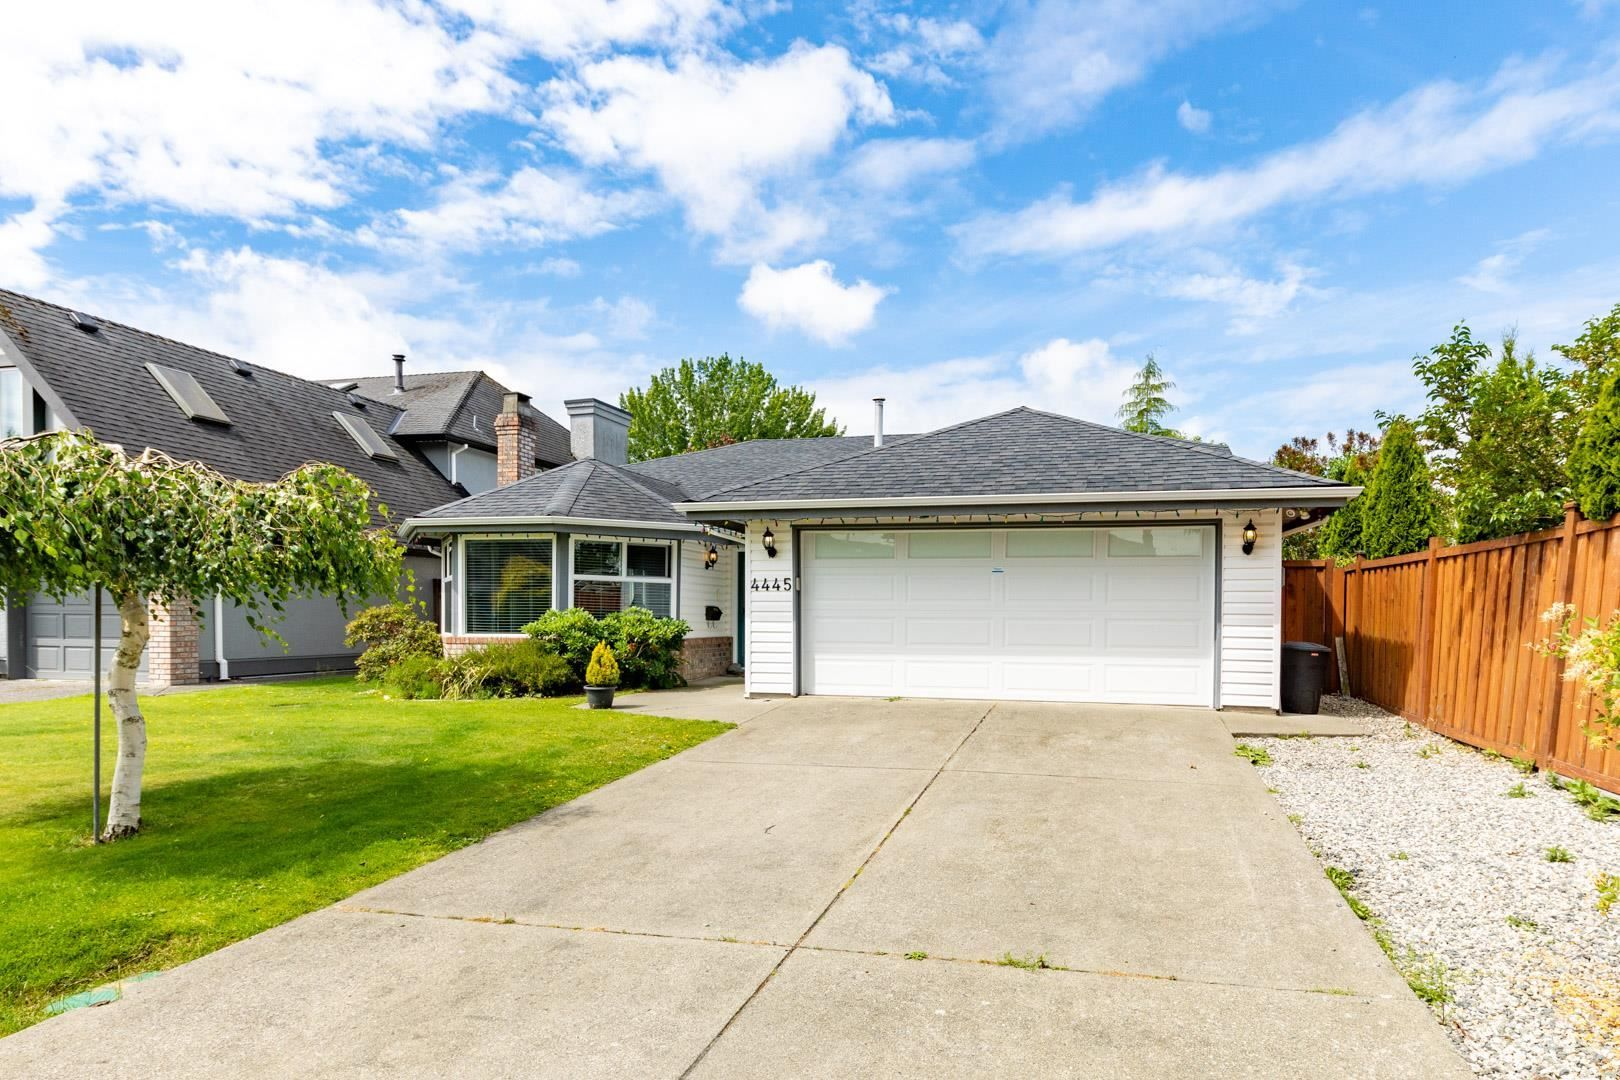 Main Photo: 4445 63A Street in Delta: Holly House for sale (Ladner)  : MLS®# R2593980